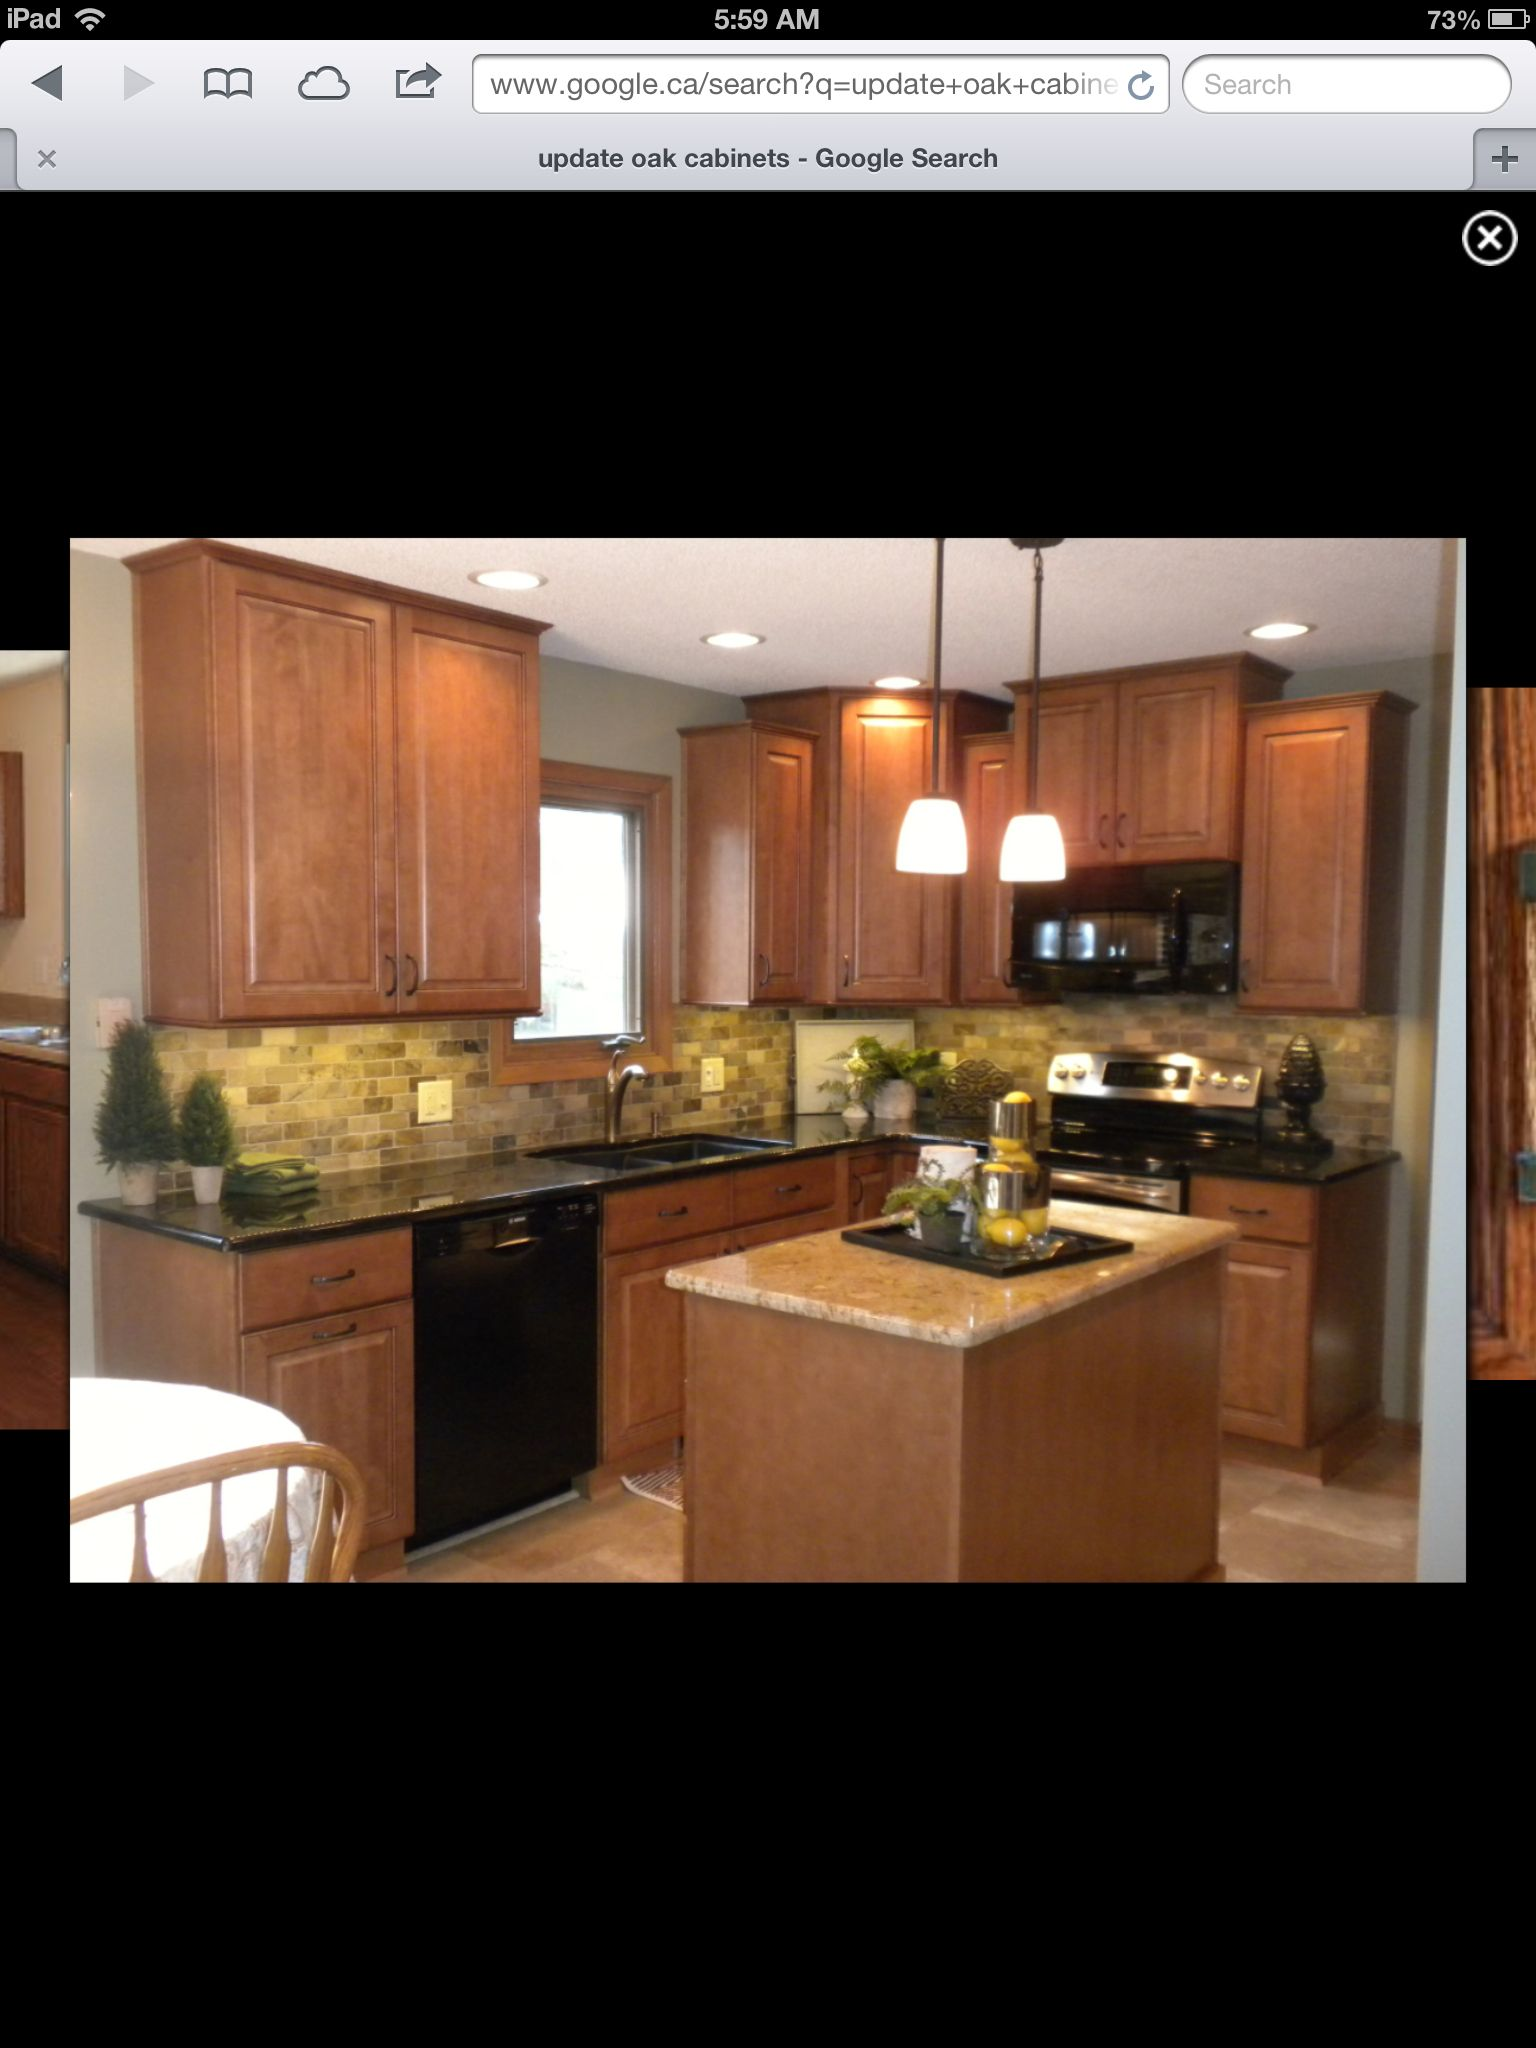 Best Update Light Oak Cabinets Decorating Pinterest Light 400 x 300